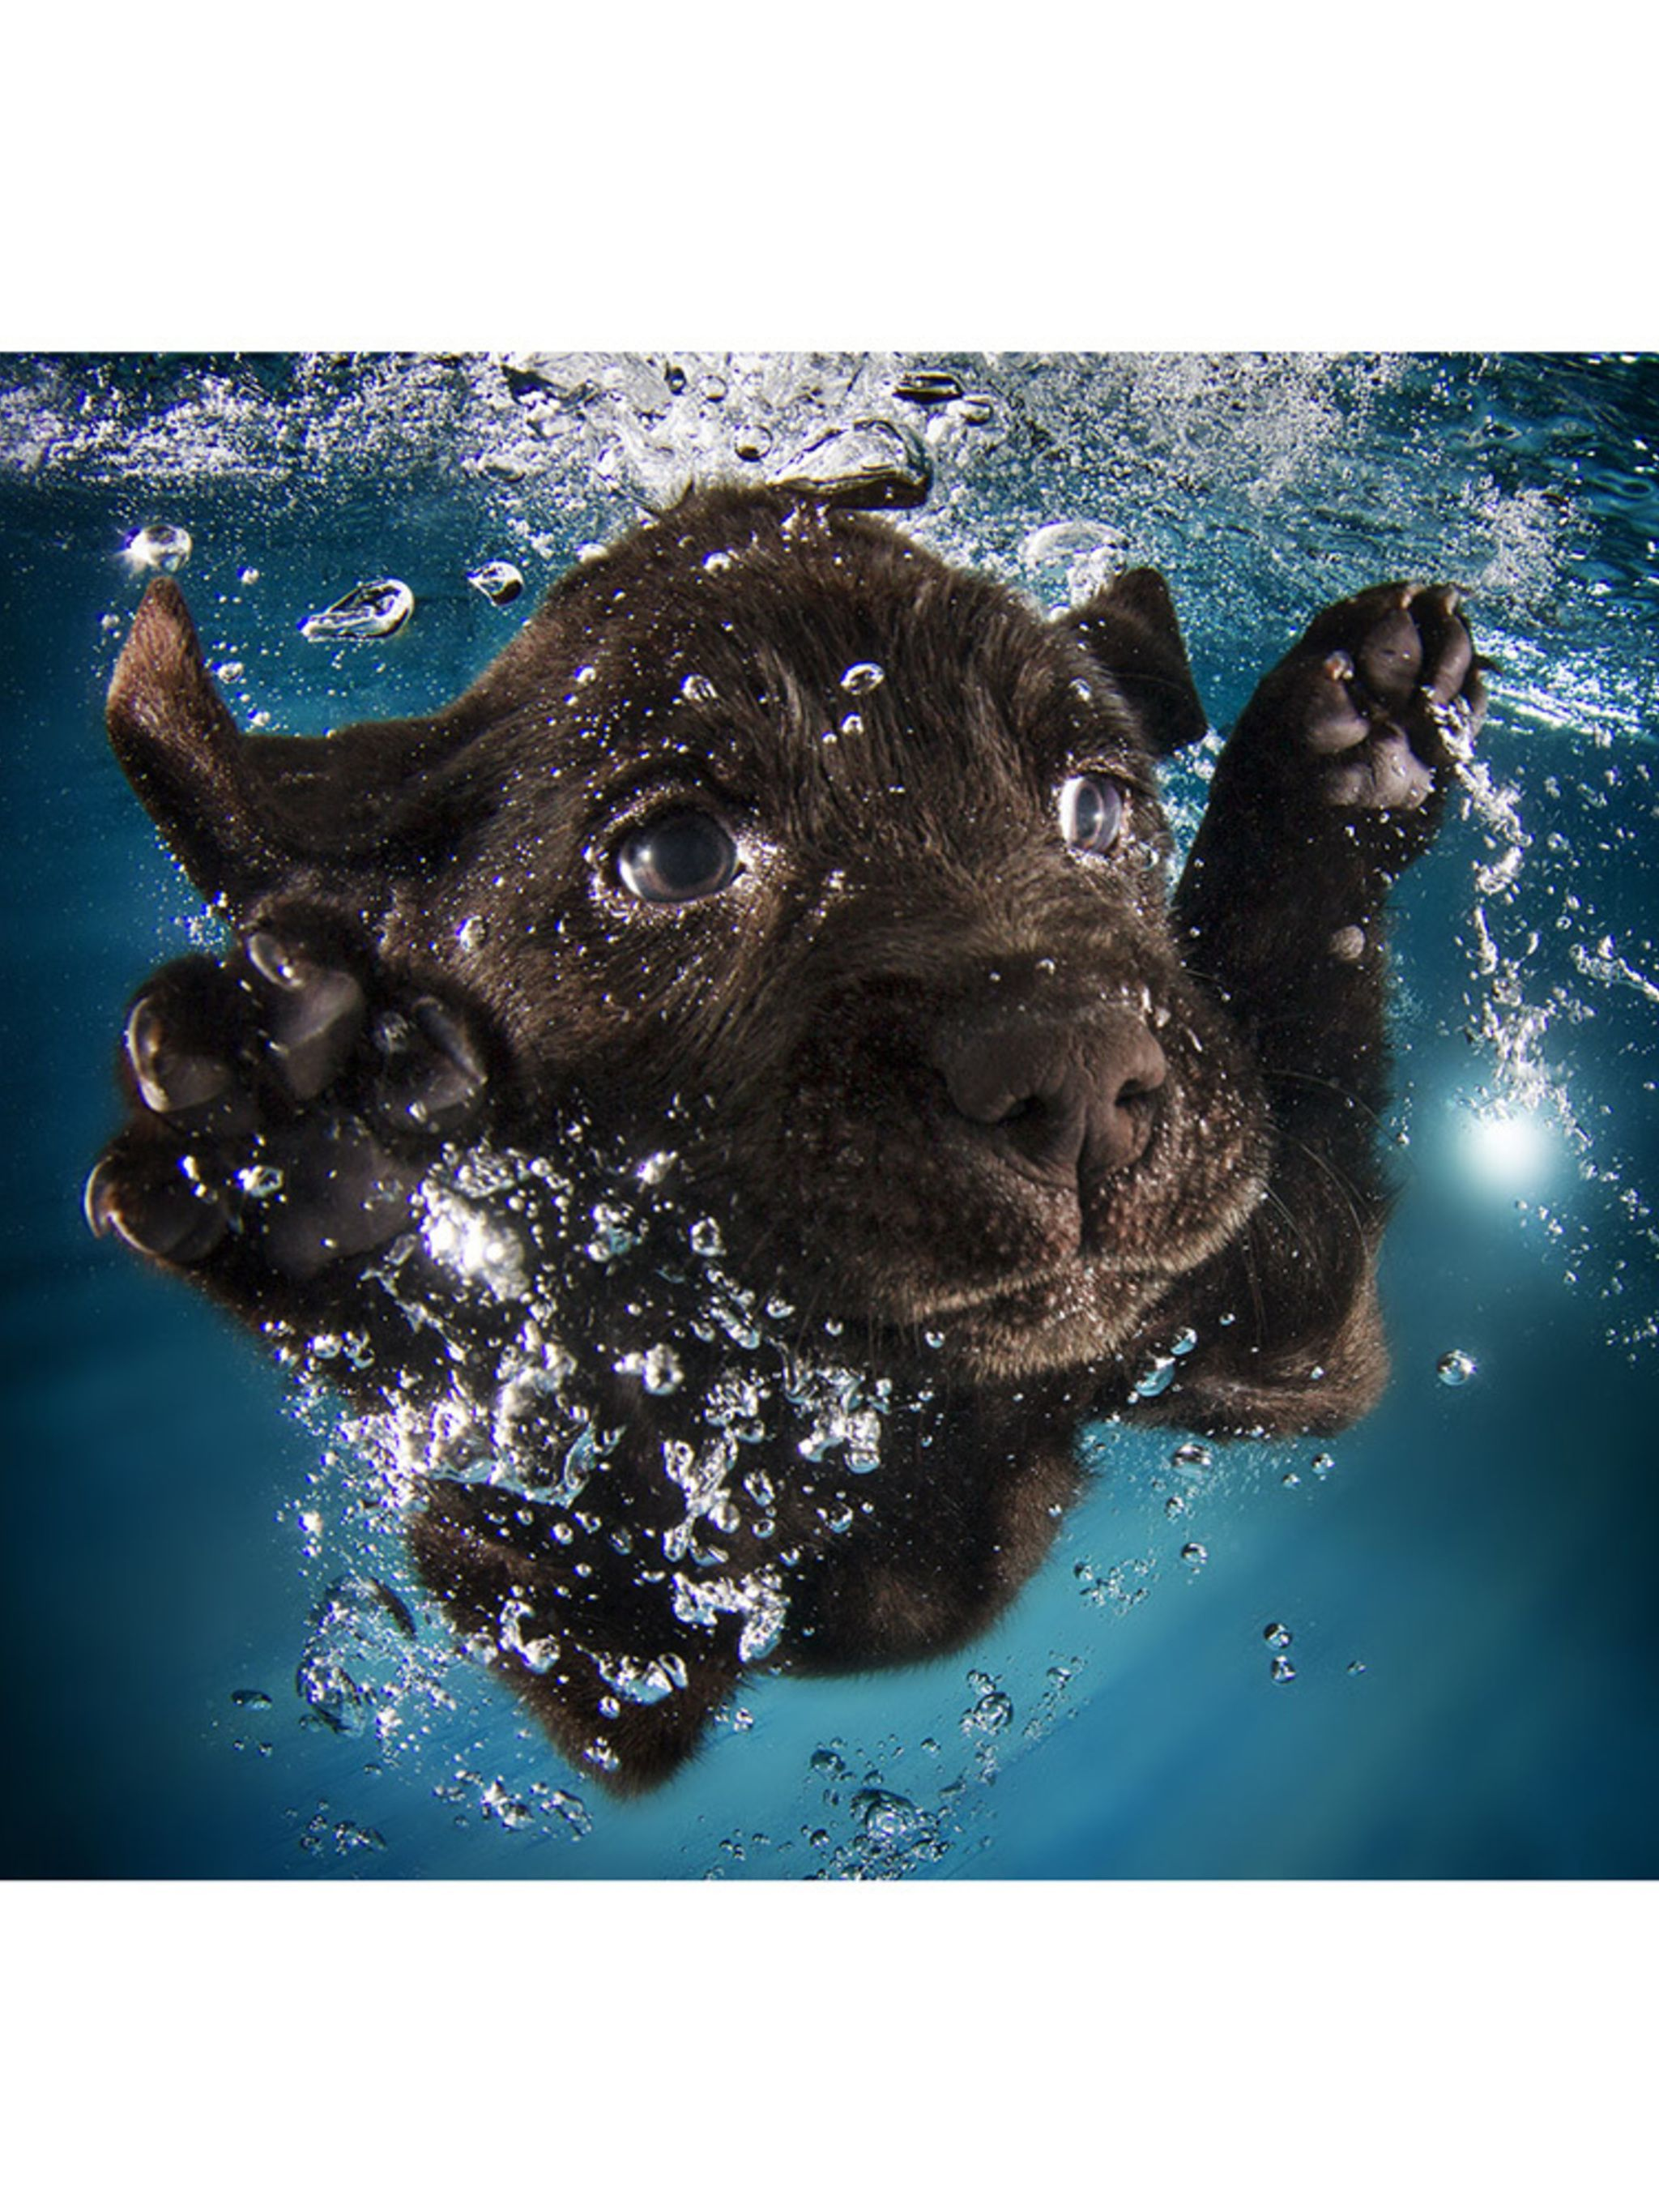 Photos: Cute Puppies swimming